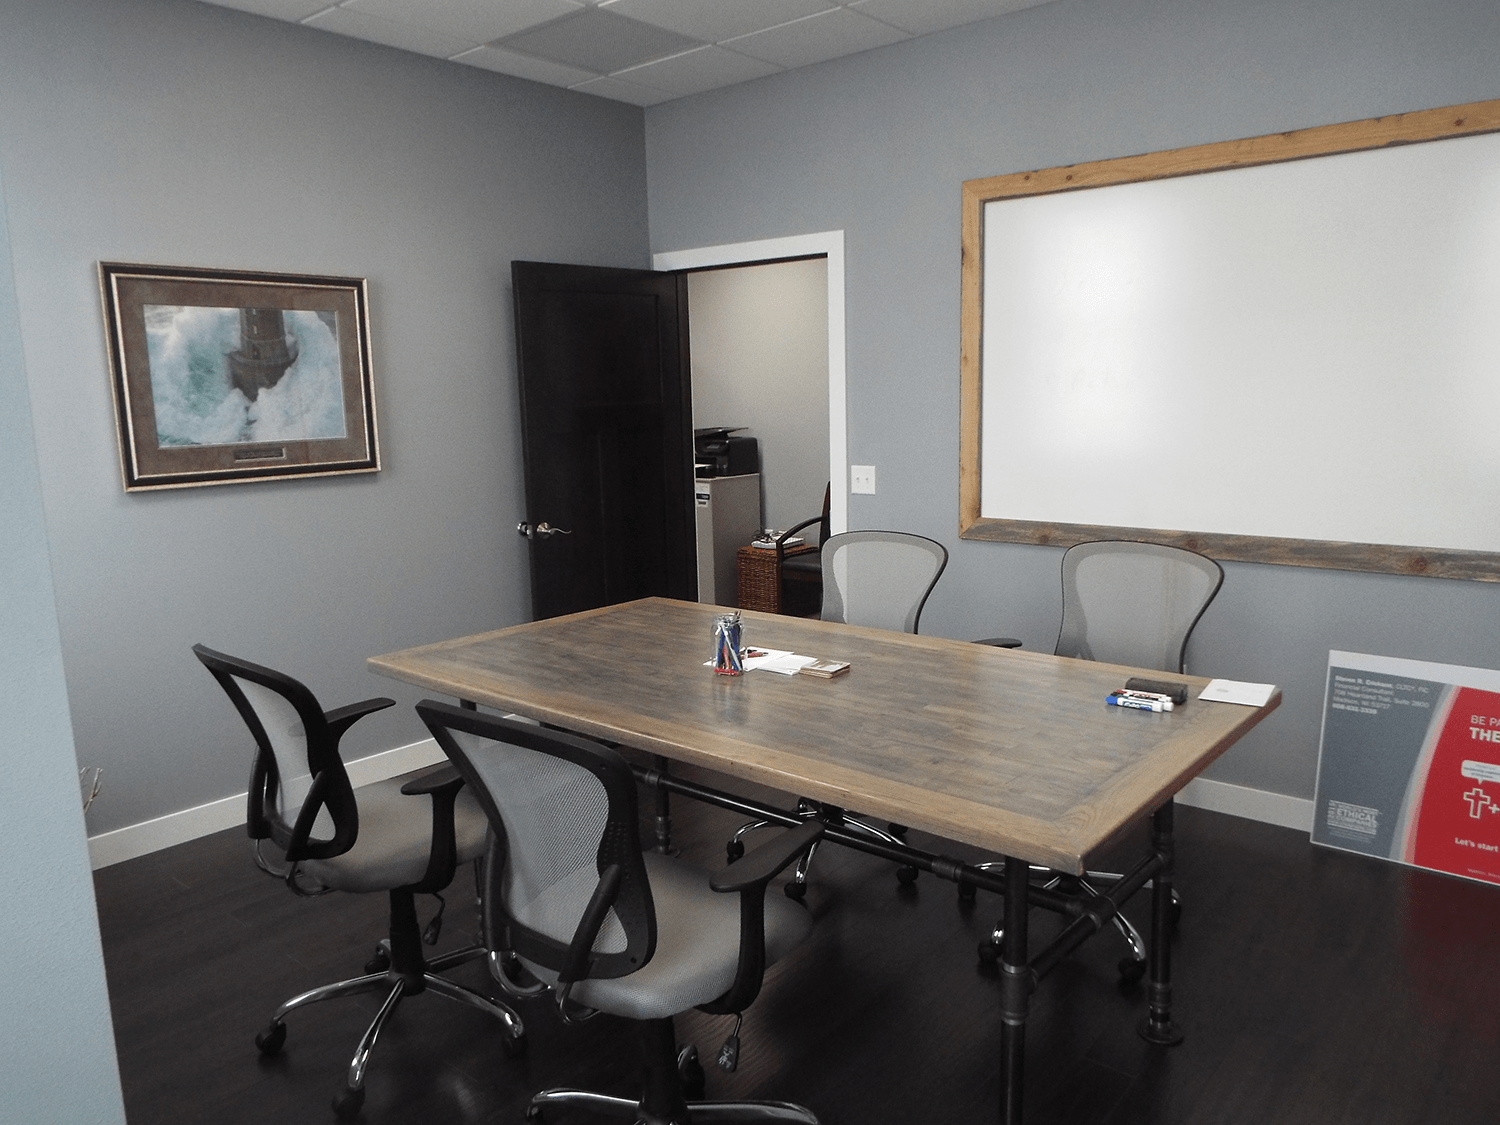 Thrivent Financial - Conference Room